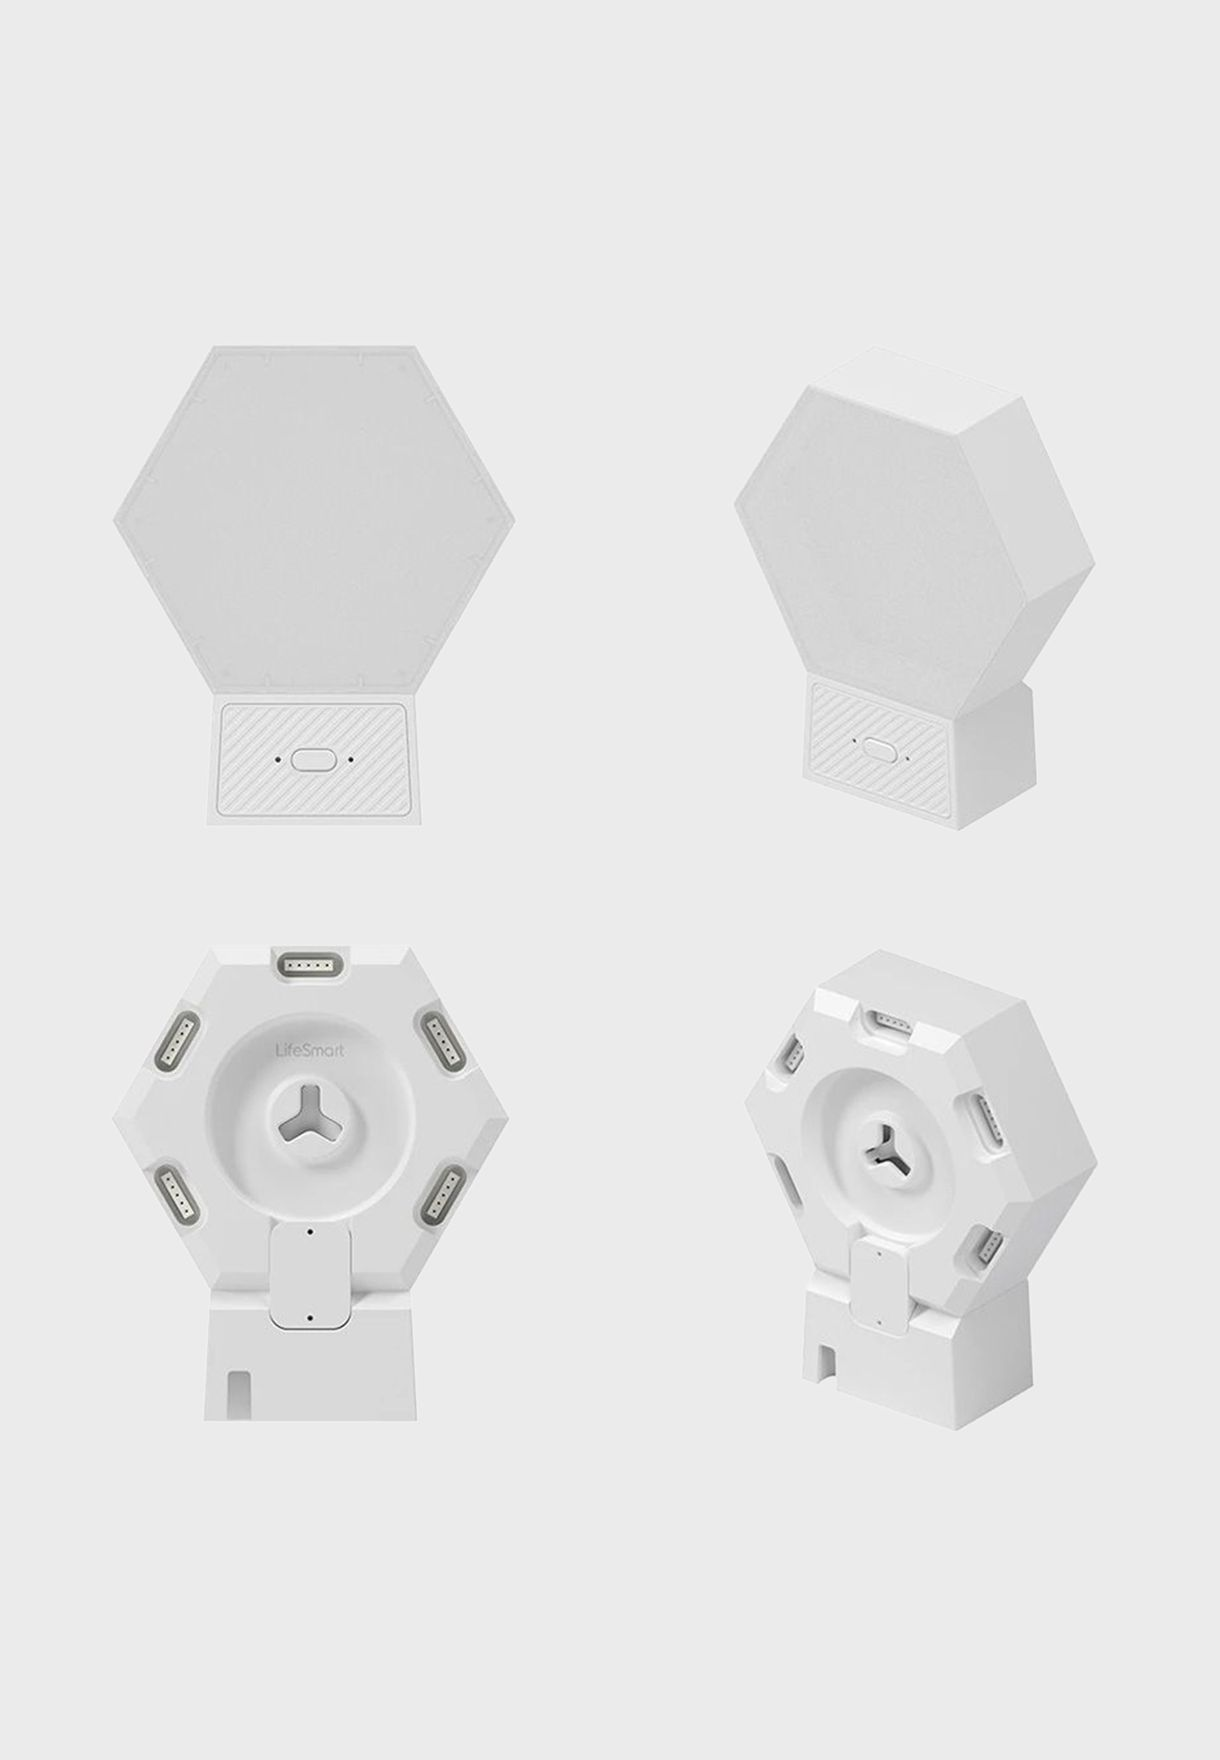 7 Panel Starter Pack Smart Light With Stand